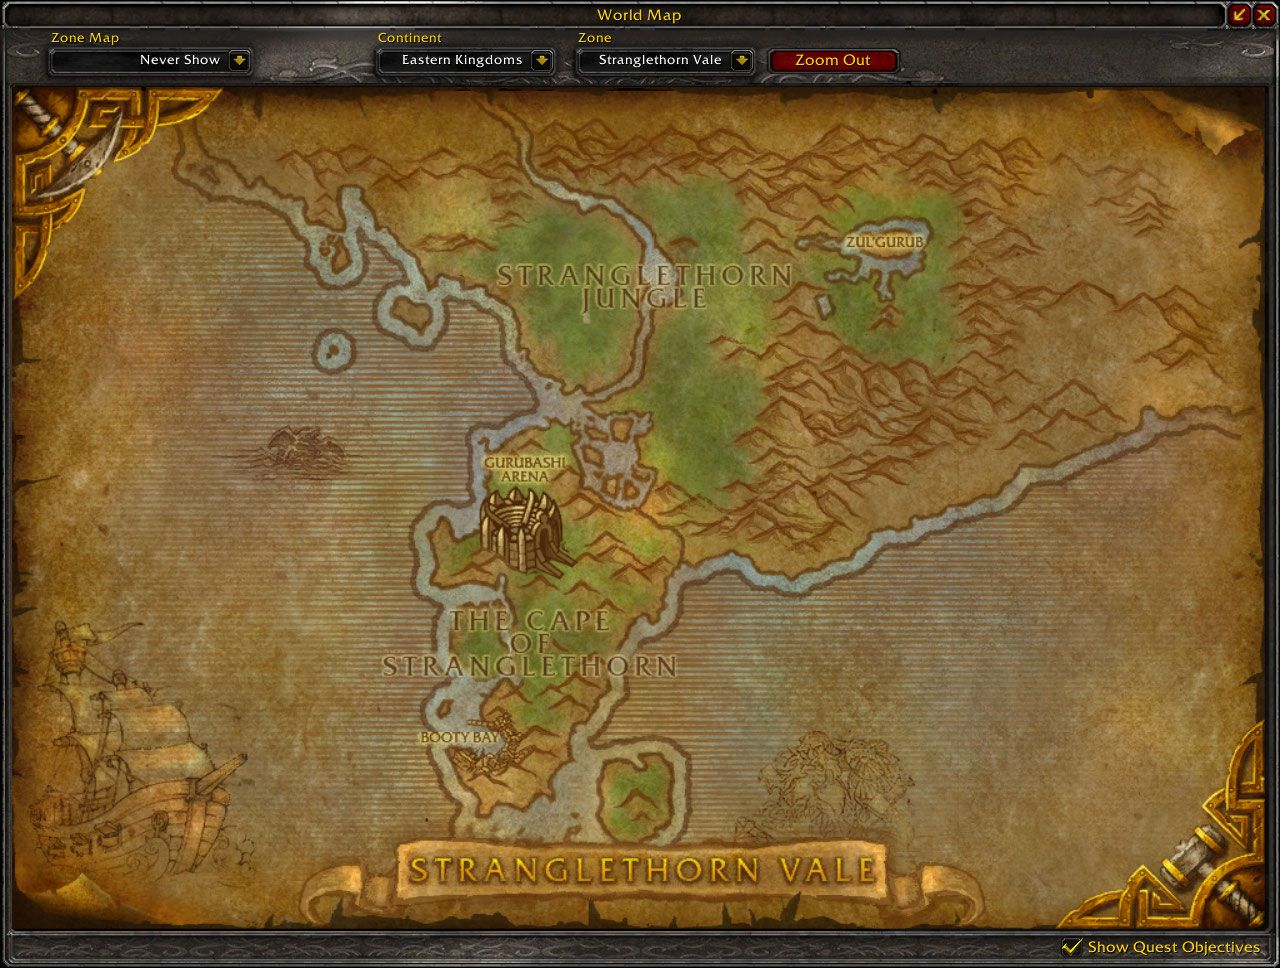 Stranglethorn vale cataclysm map wow screenshot gamingcfg stranglethorn vale cataclysm map wow screenshot gumiabroncs Choice Image